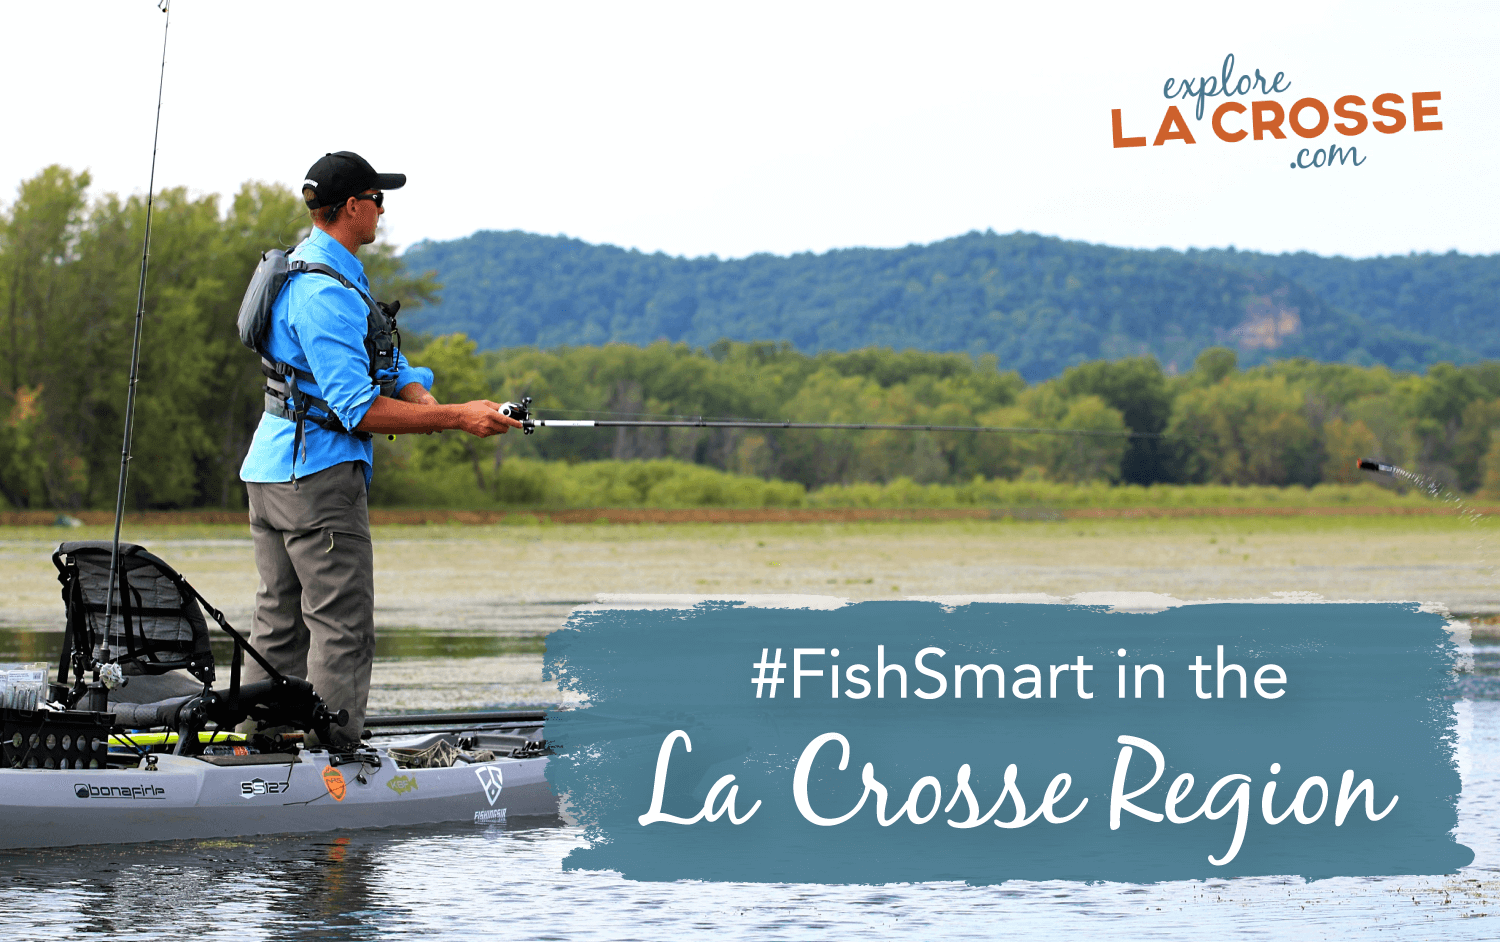 #FishSmart in the La Crosse Region